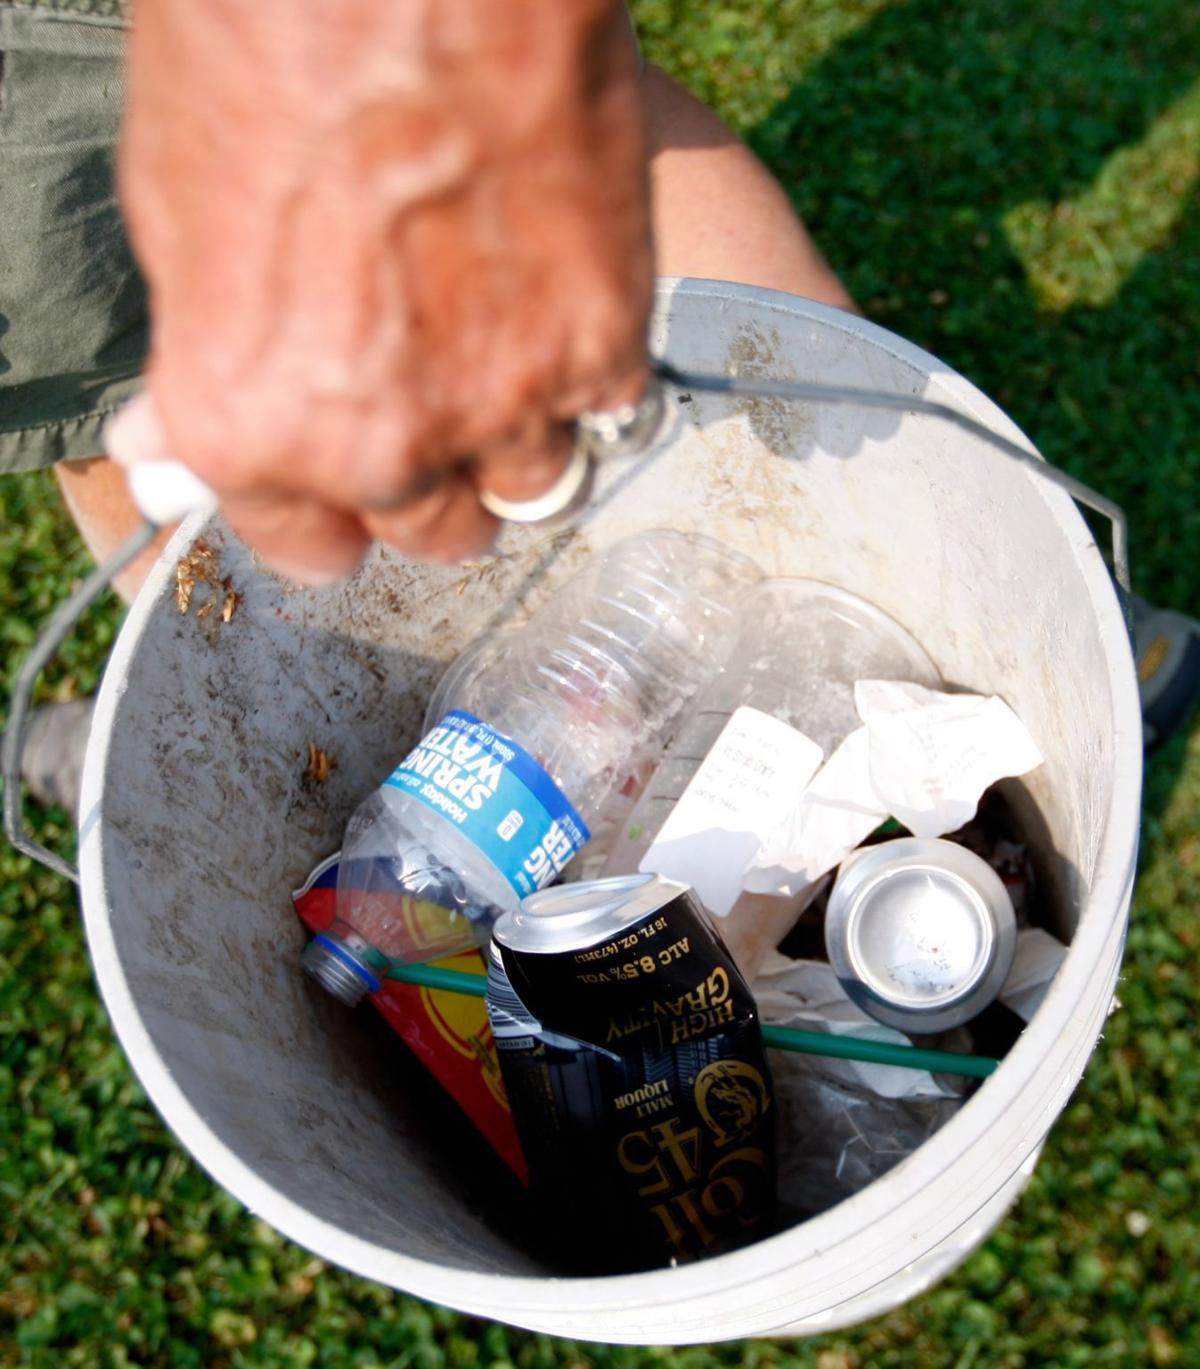 North Park cleanup